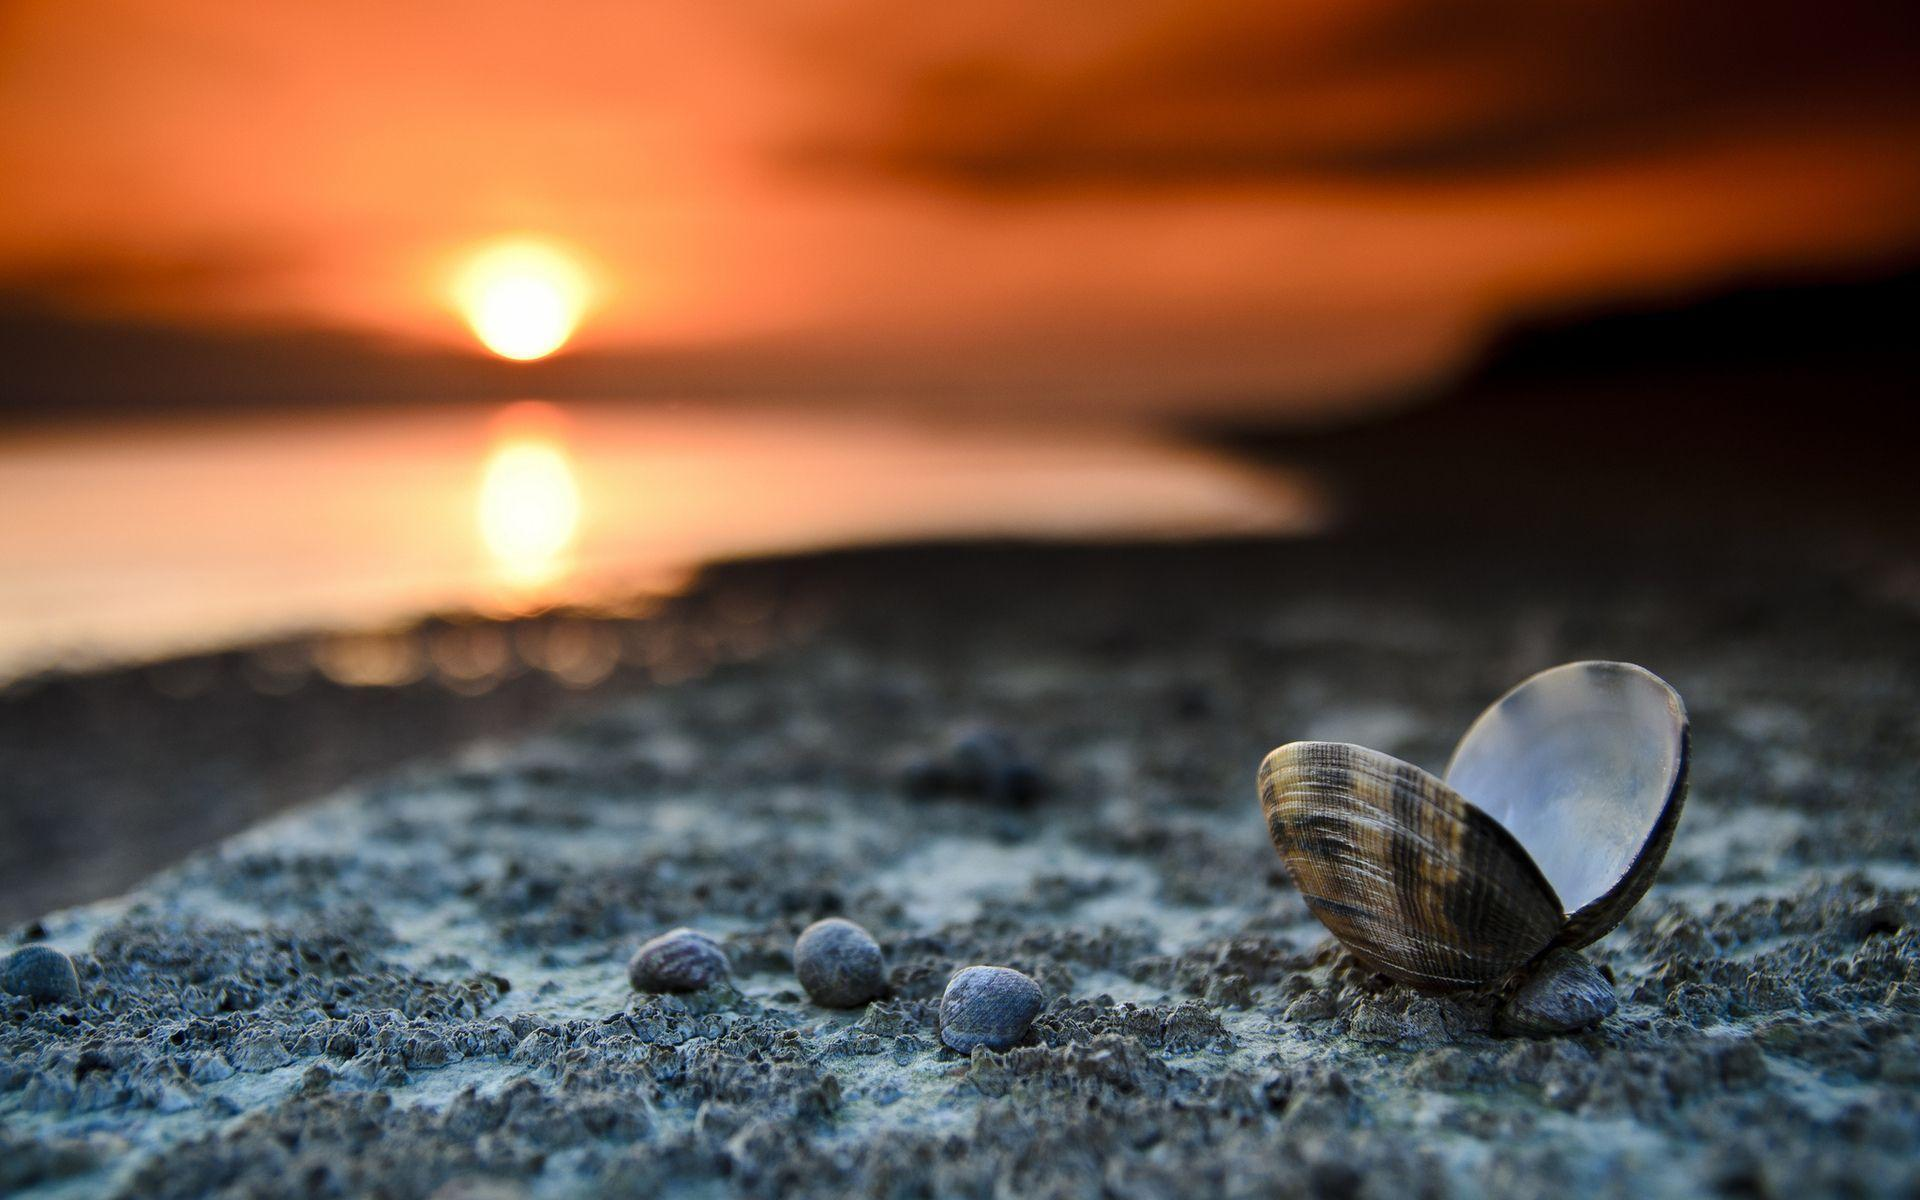 Shells in the sunset wallpaper | Wallpaper Wide HD